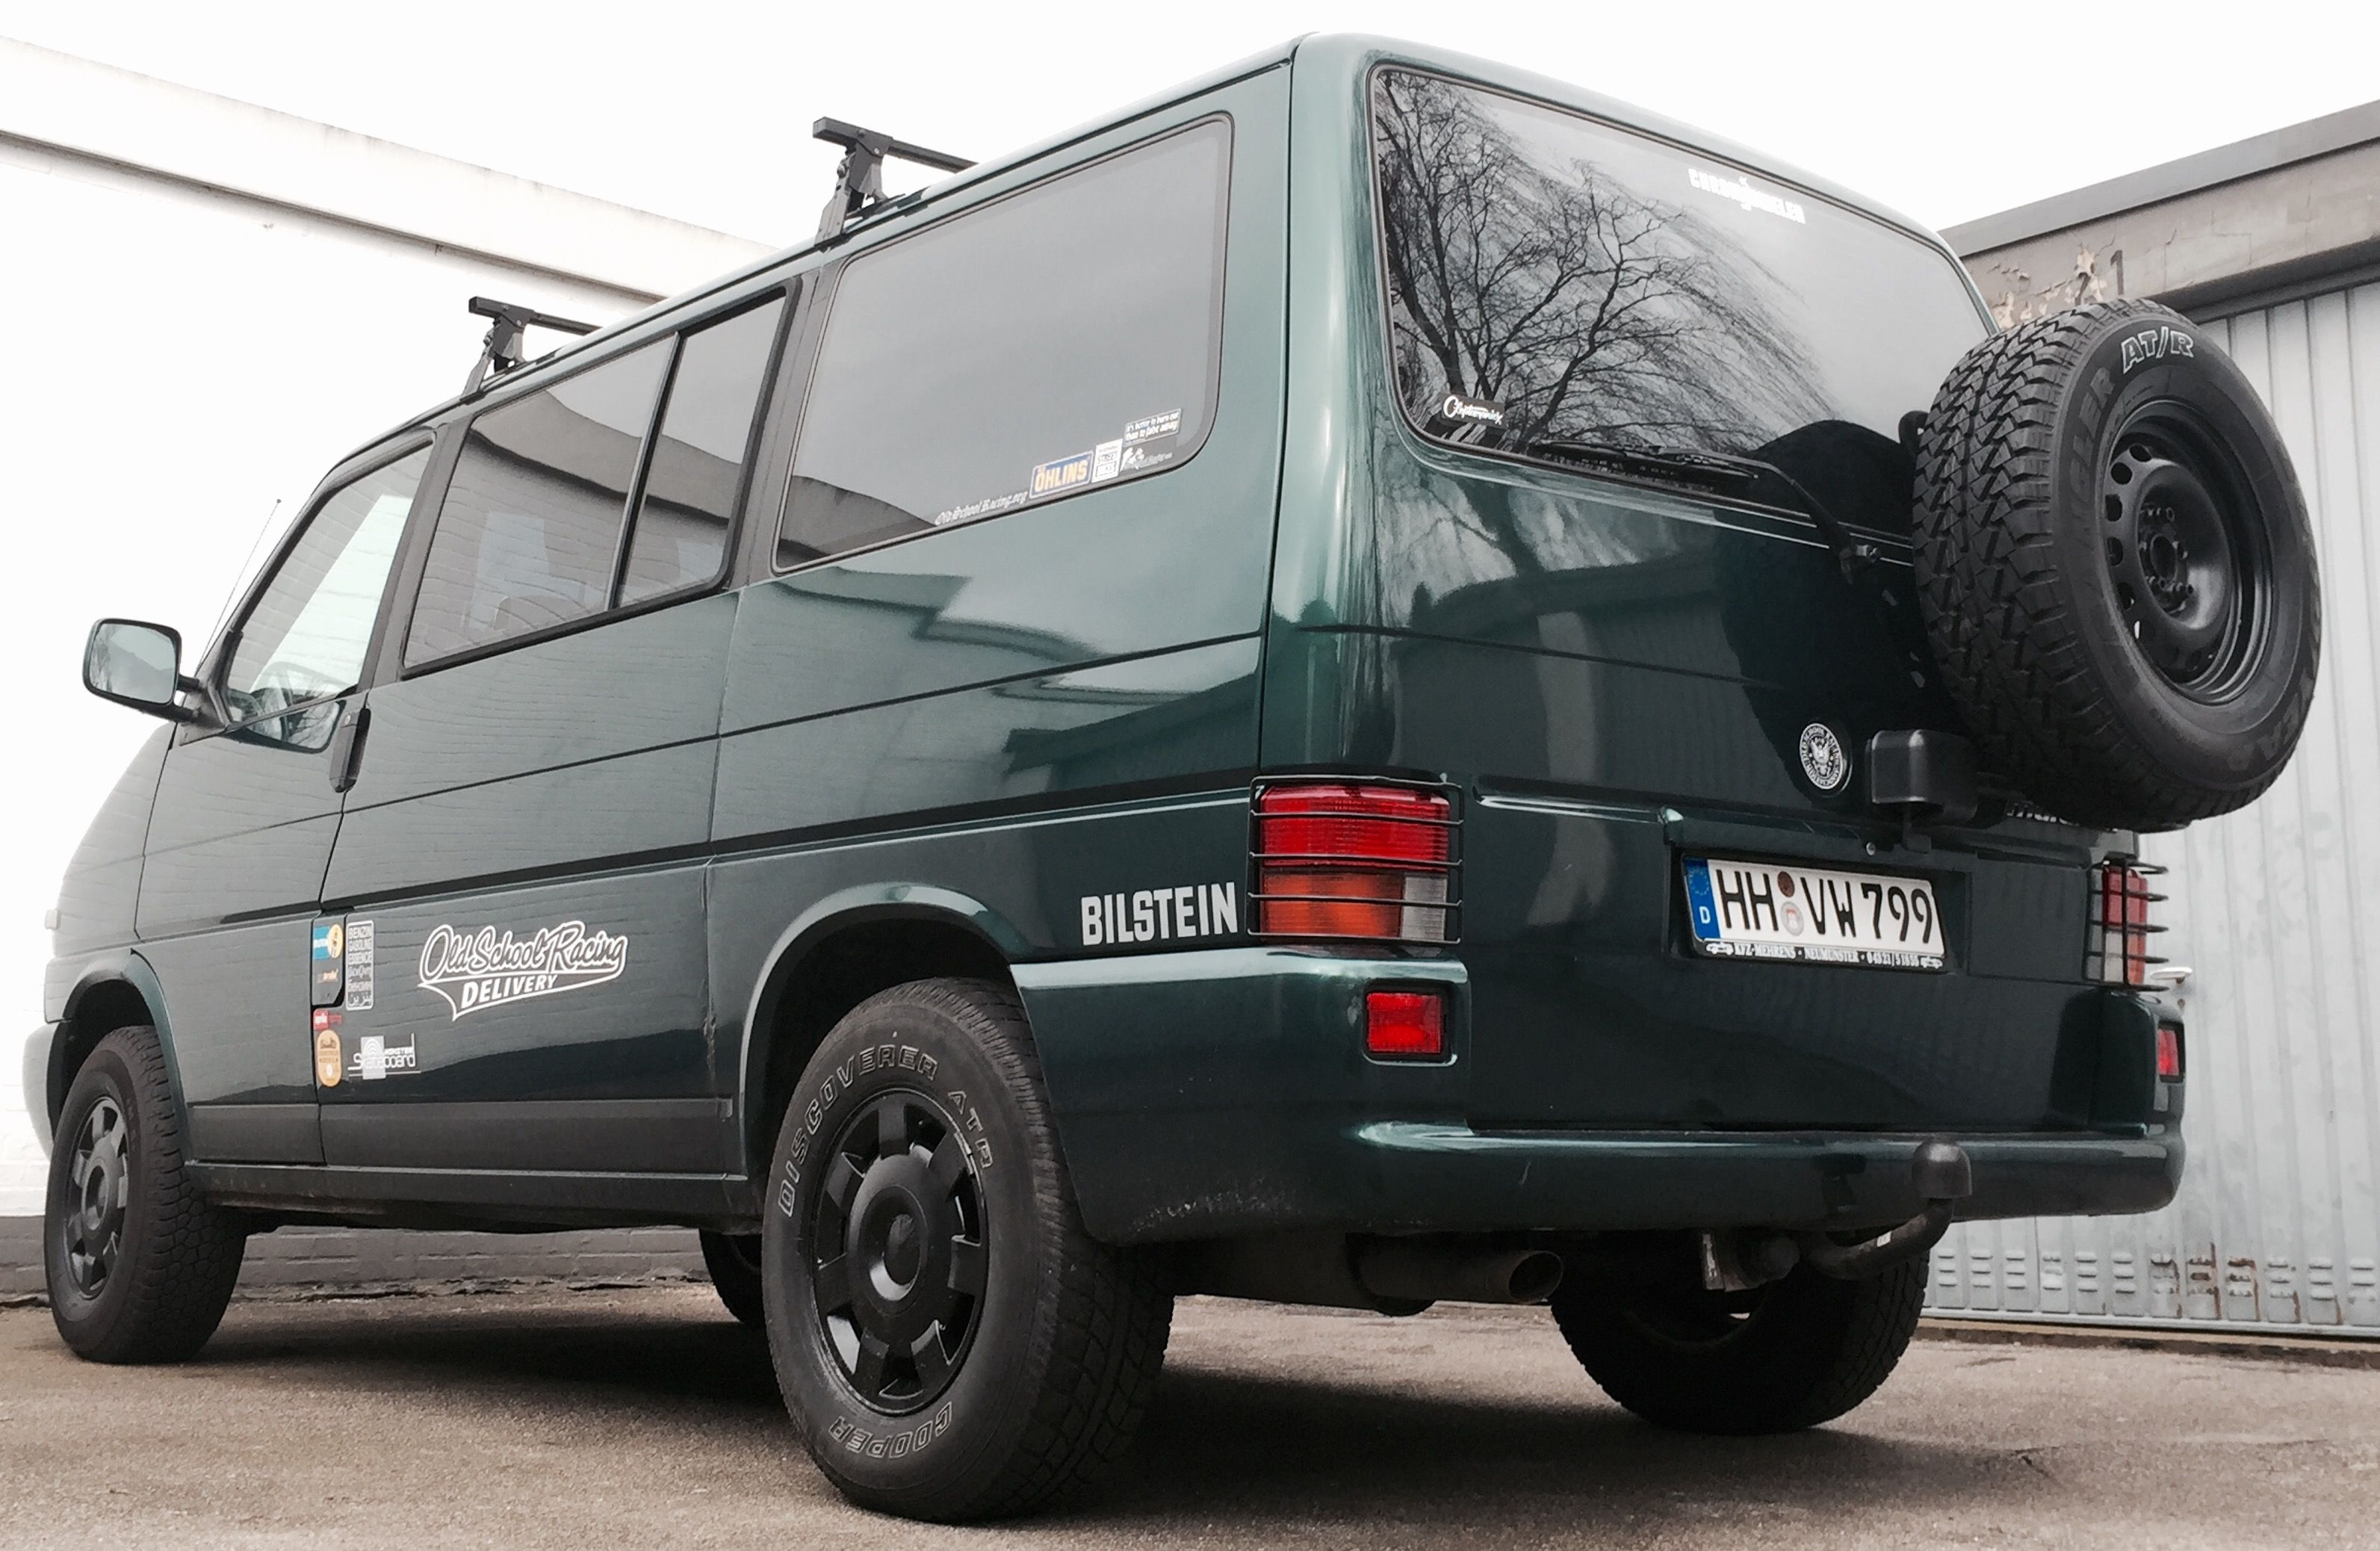 vw t4 syncro 1997 model t4 ty pinterest vw t4 syncro vw and vw syncro. Black Bedroom Furniture Sets. Home Design Ideas